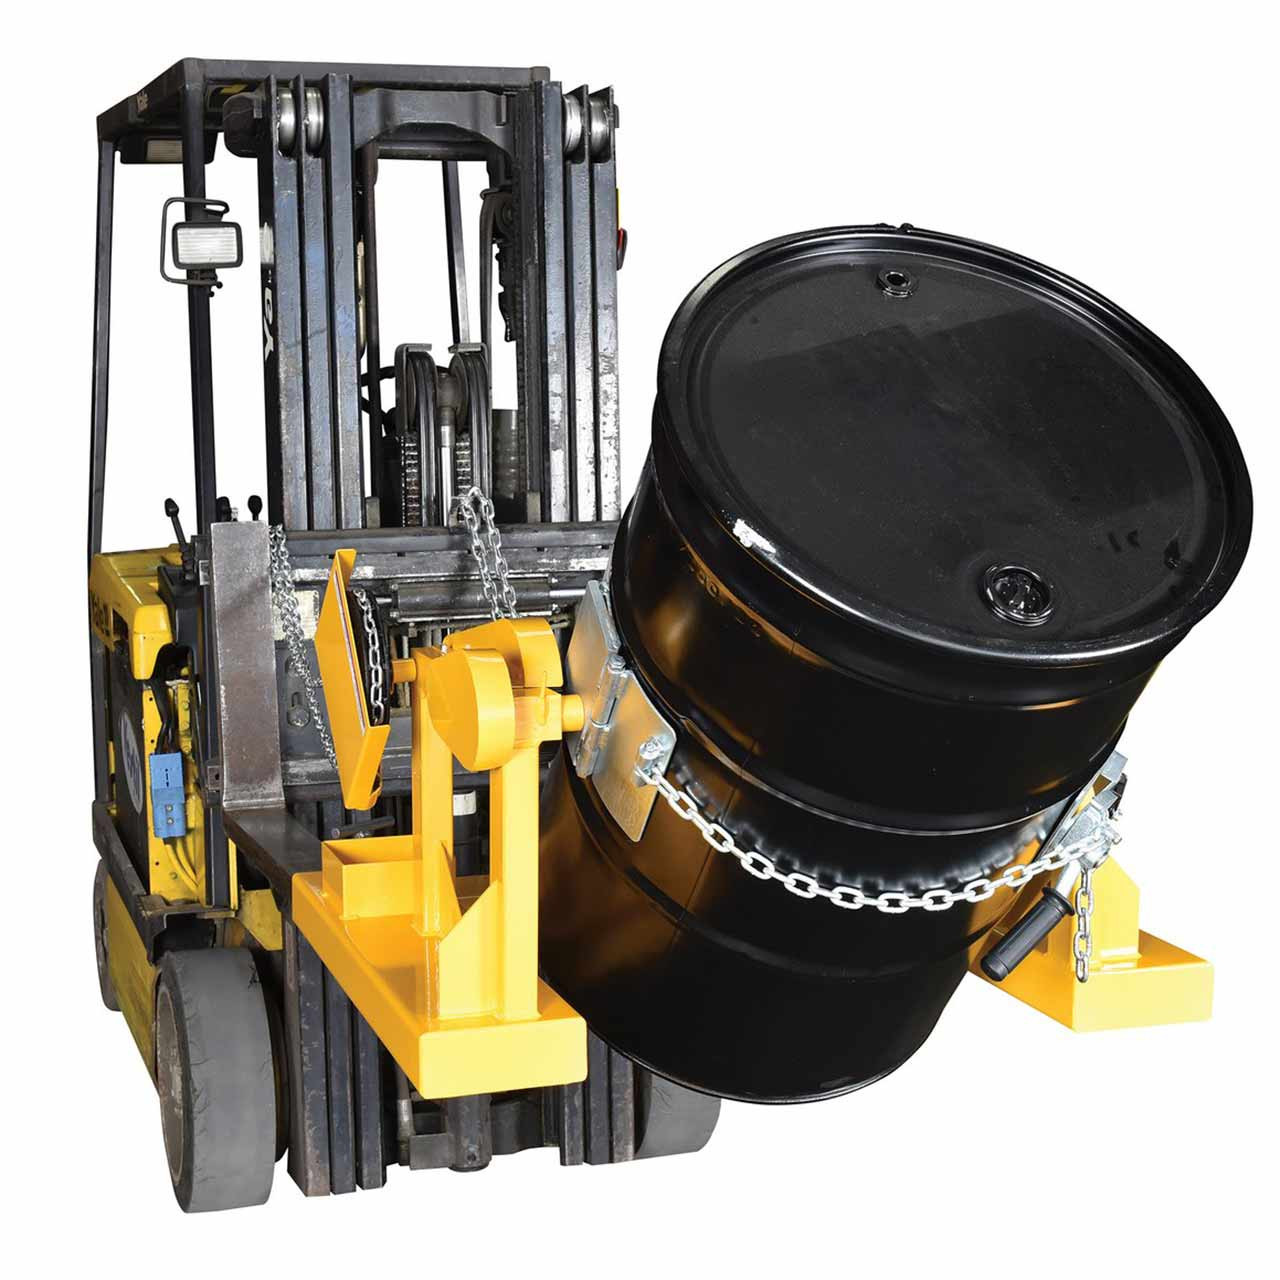 Fork Mounted Drum Carriers/Rotator On Forklift